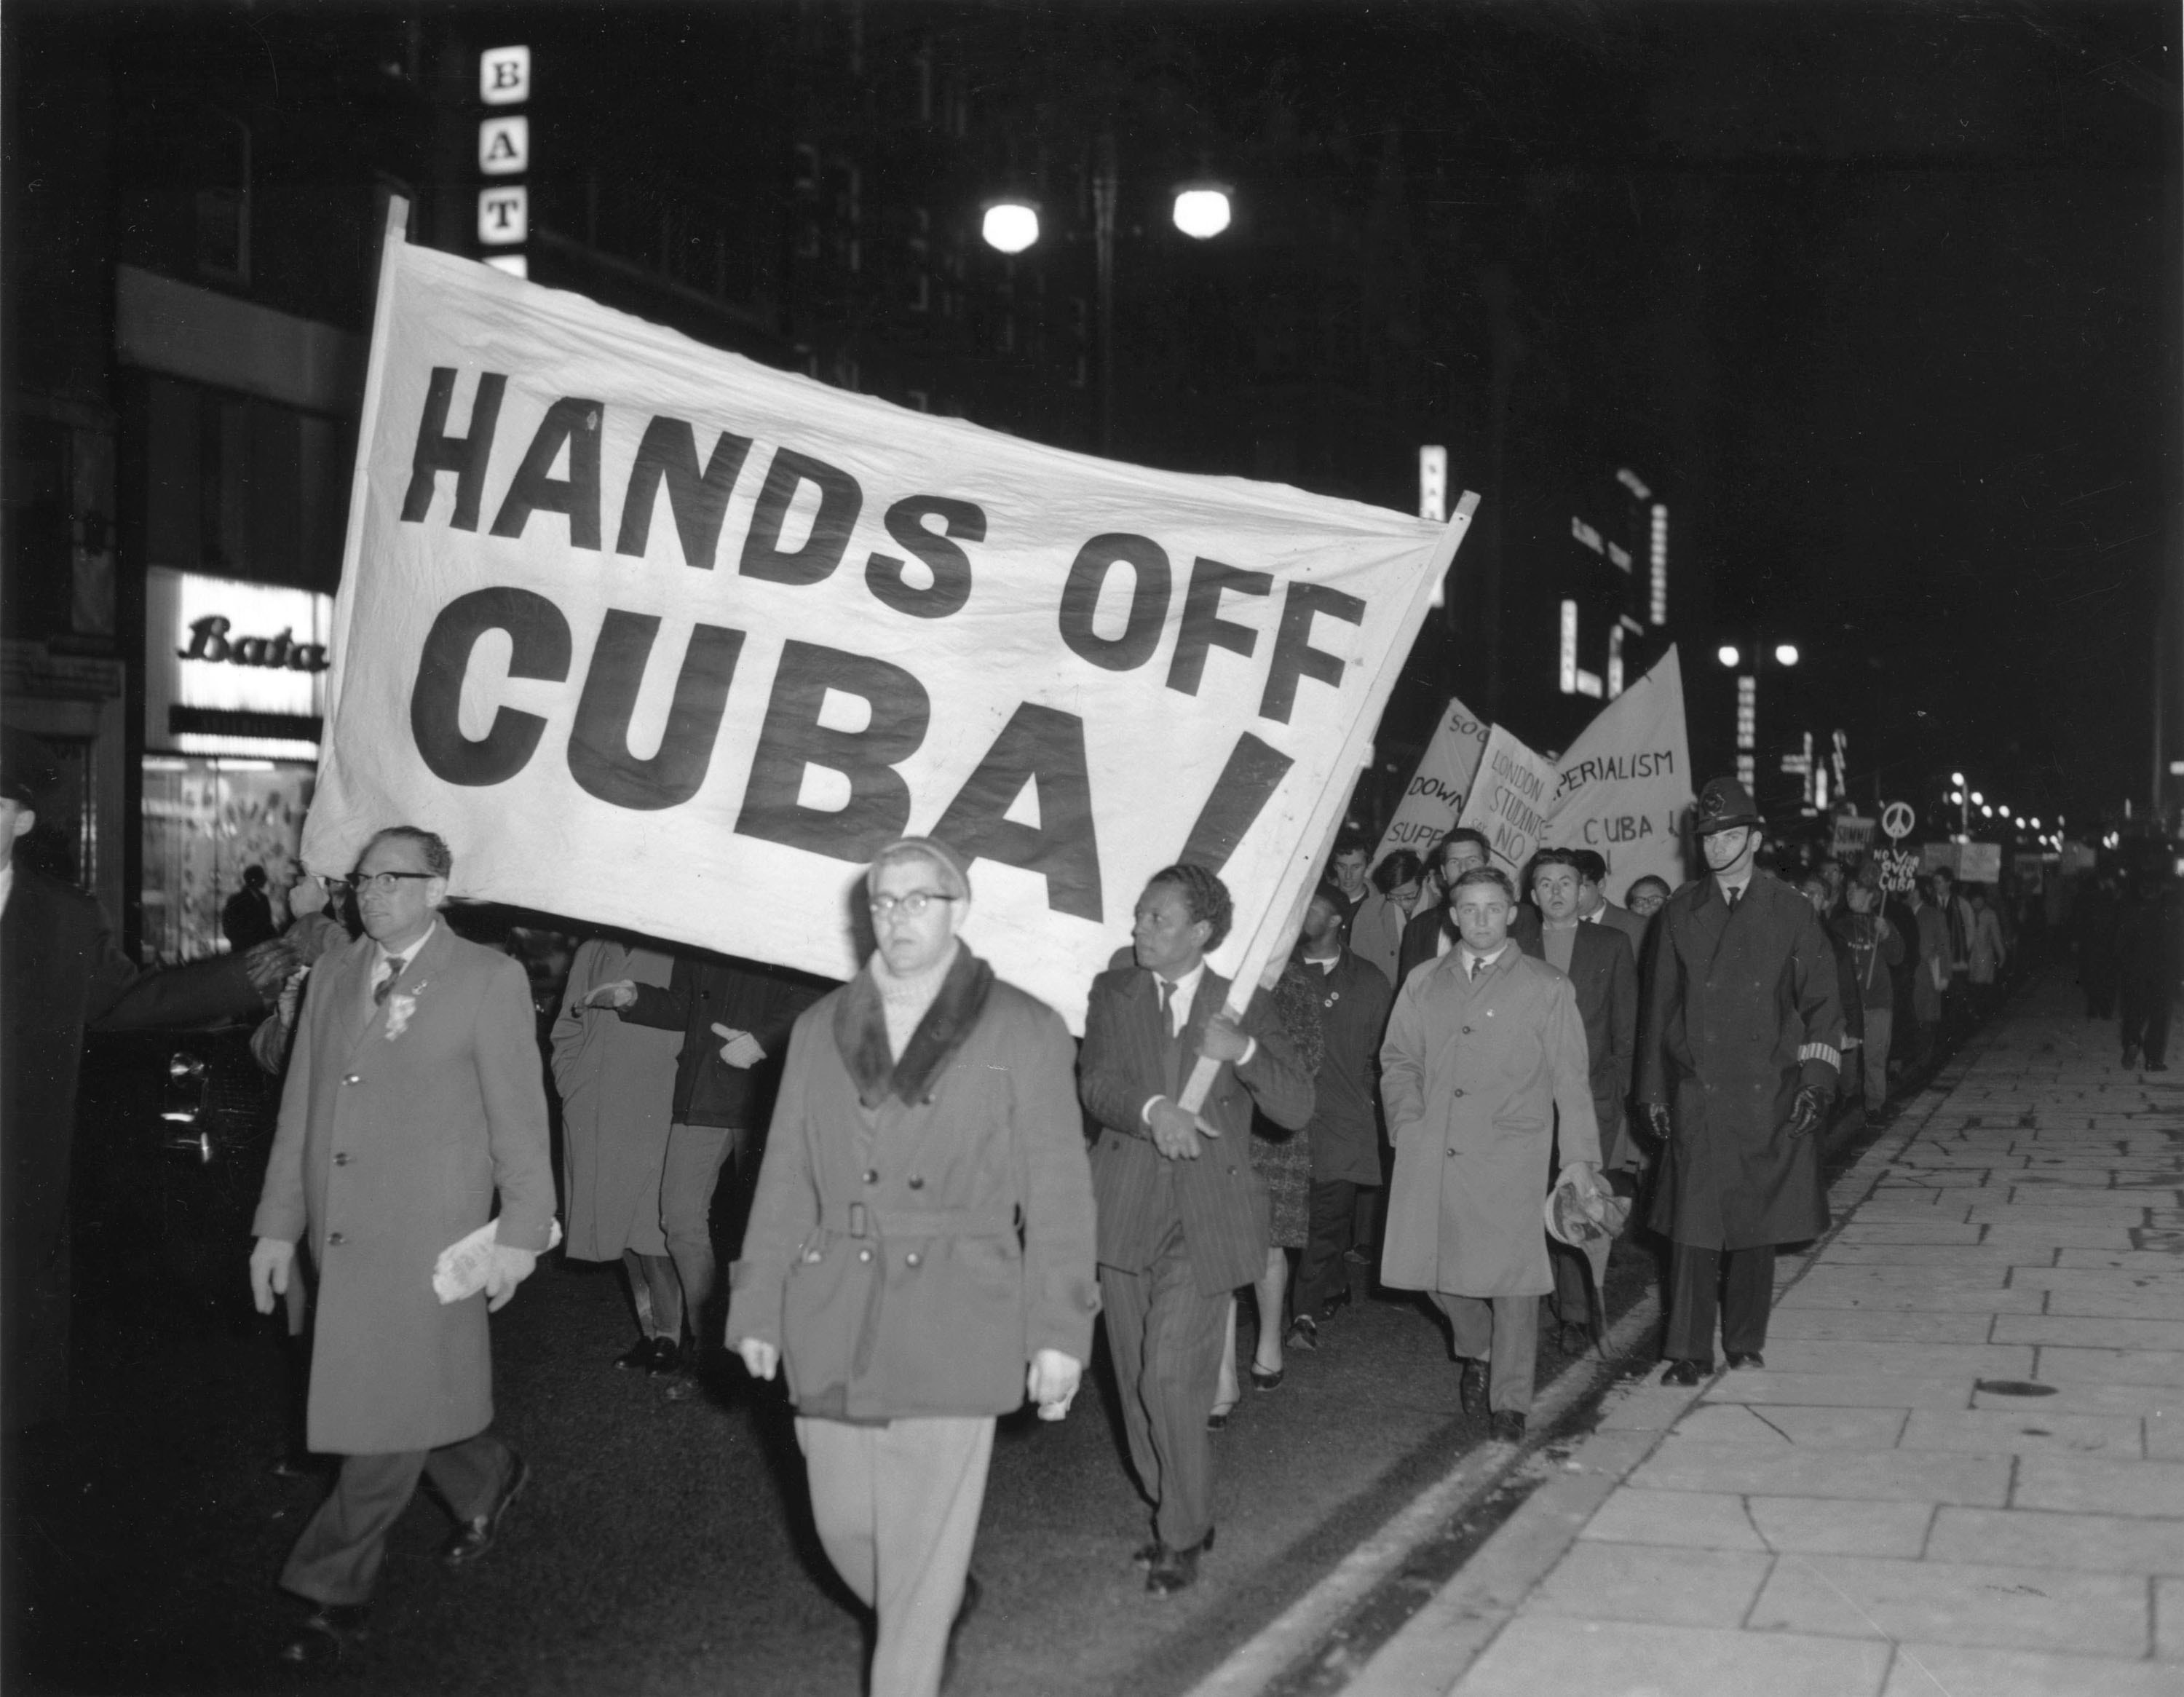 a debate on the cuban missile crisis The cuban missile crisis, recalled robert f kennedy, was a confrontation between the two giant atomic nations, the us and the ussr, which brought the.